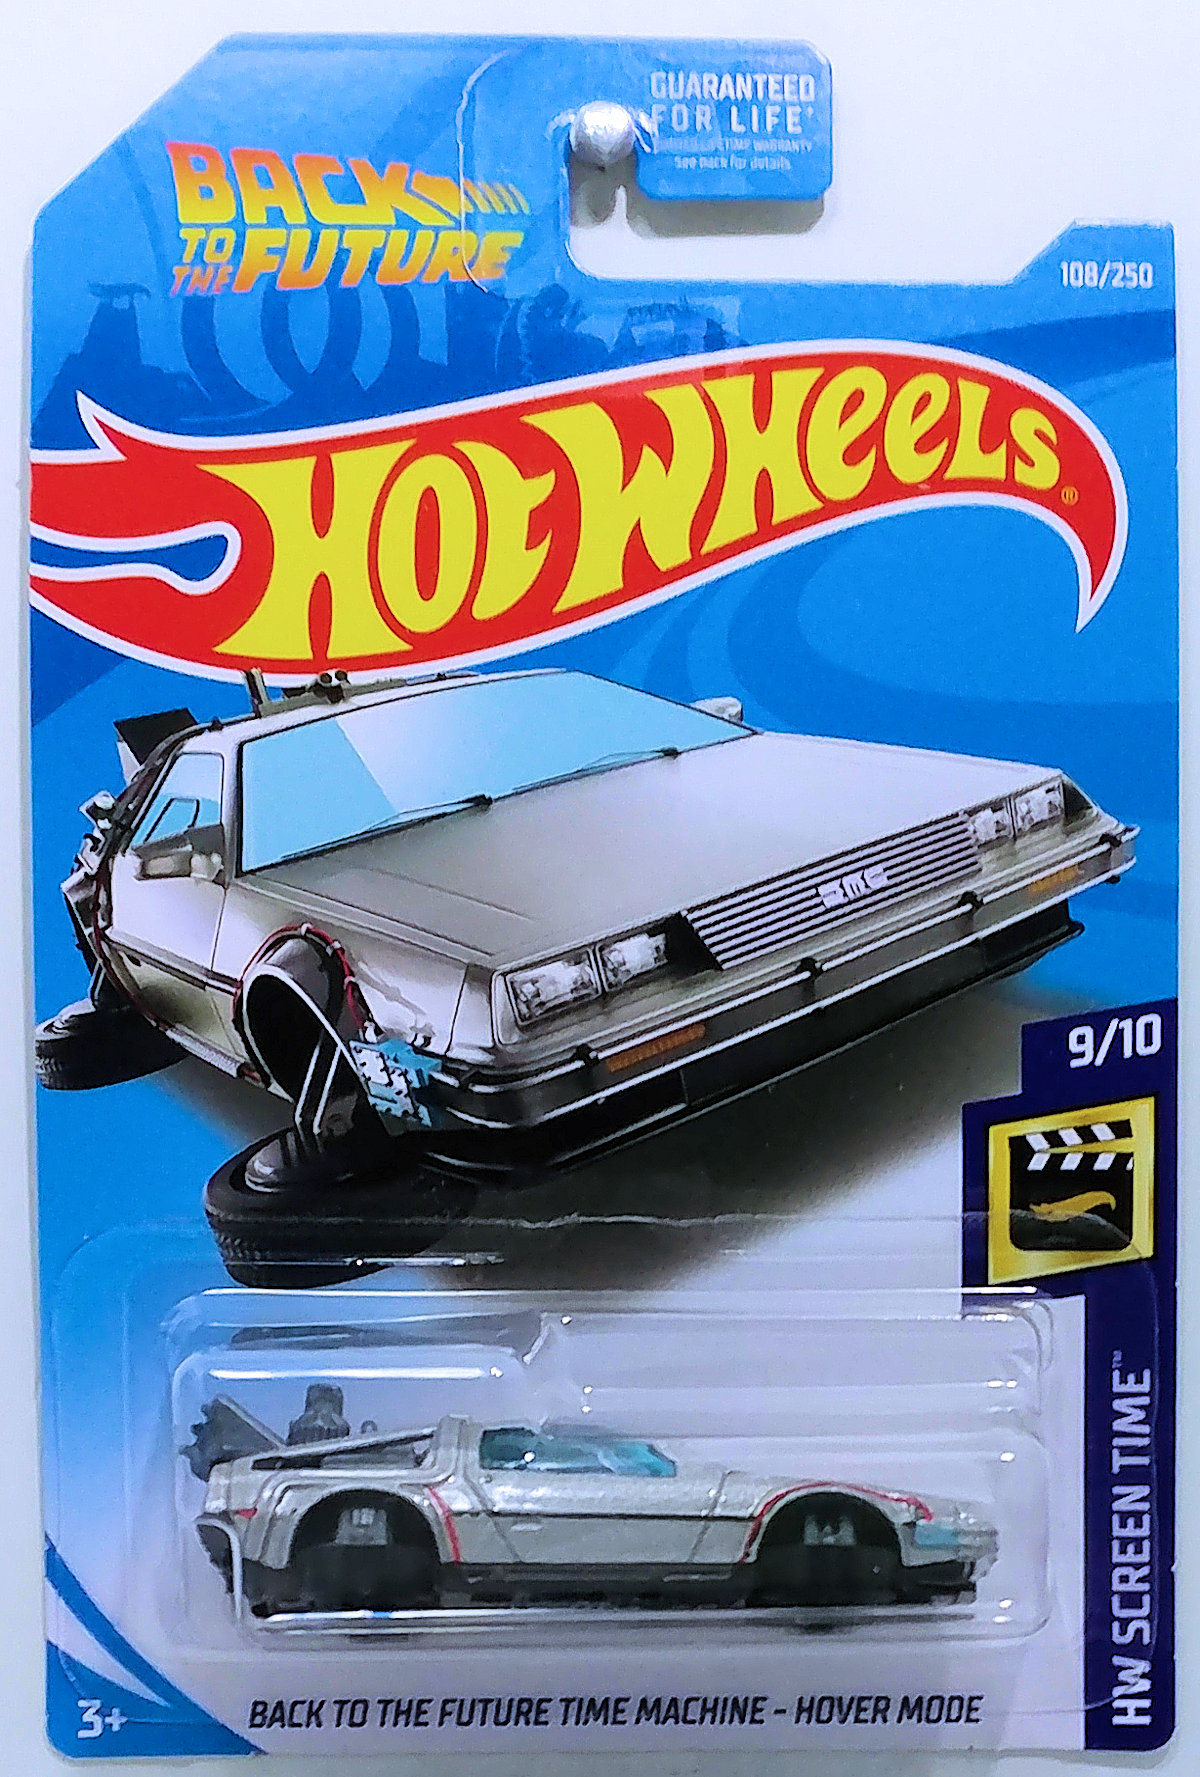 Back To The Future Time Machine Hover Mode Model Cars